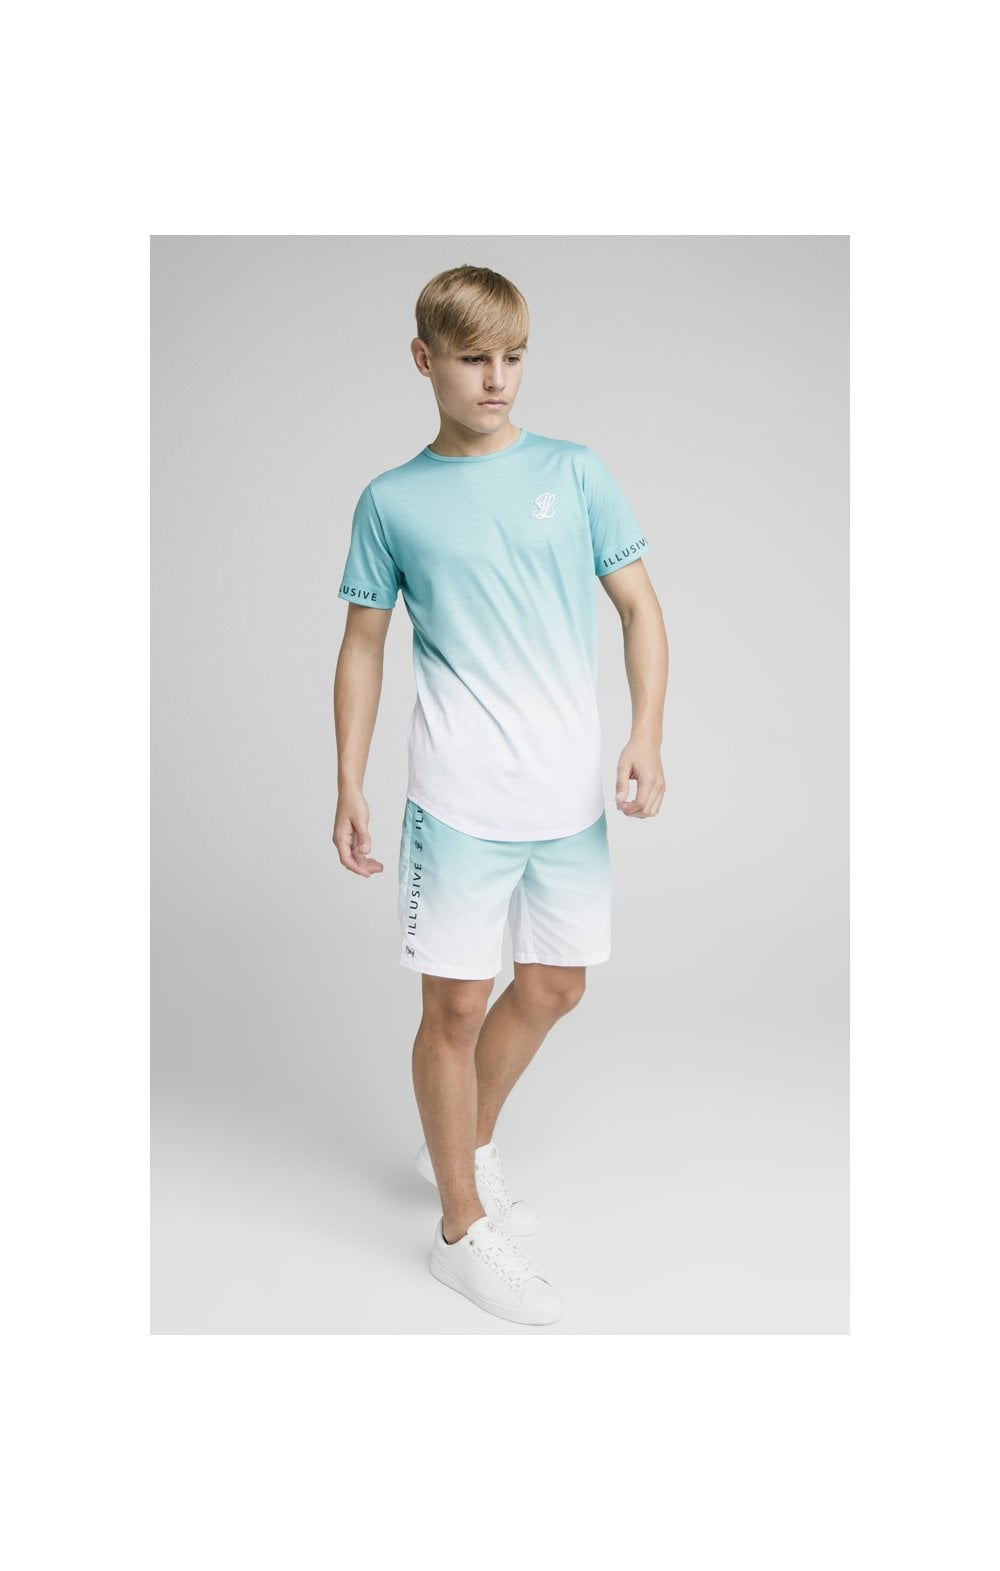 Load image into Gallery viewer, Illusive London Fade Swim Shorts - Teal & White (3)